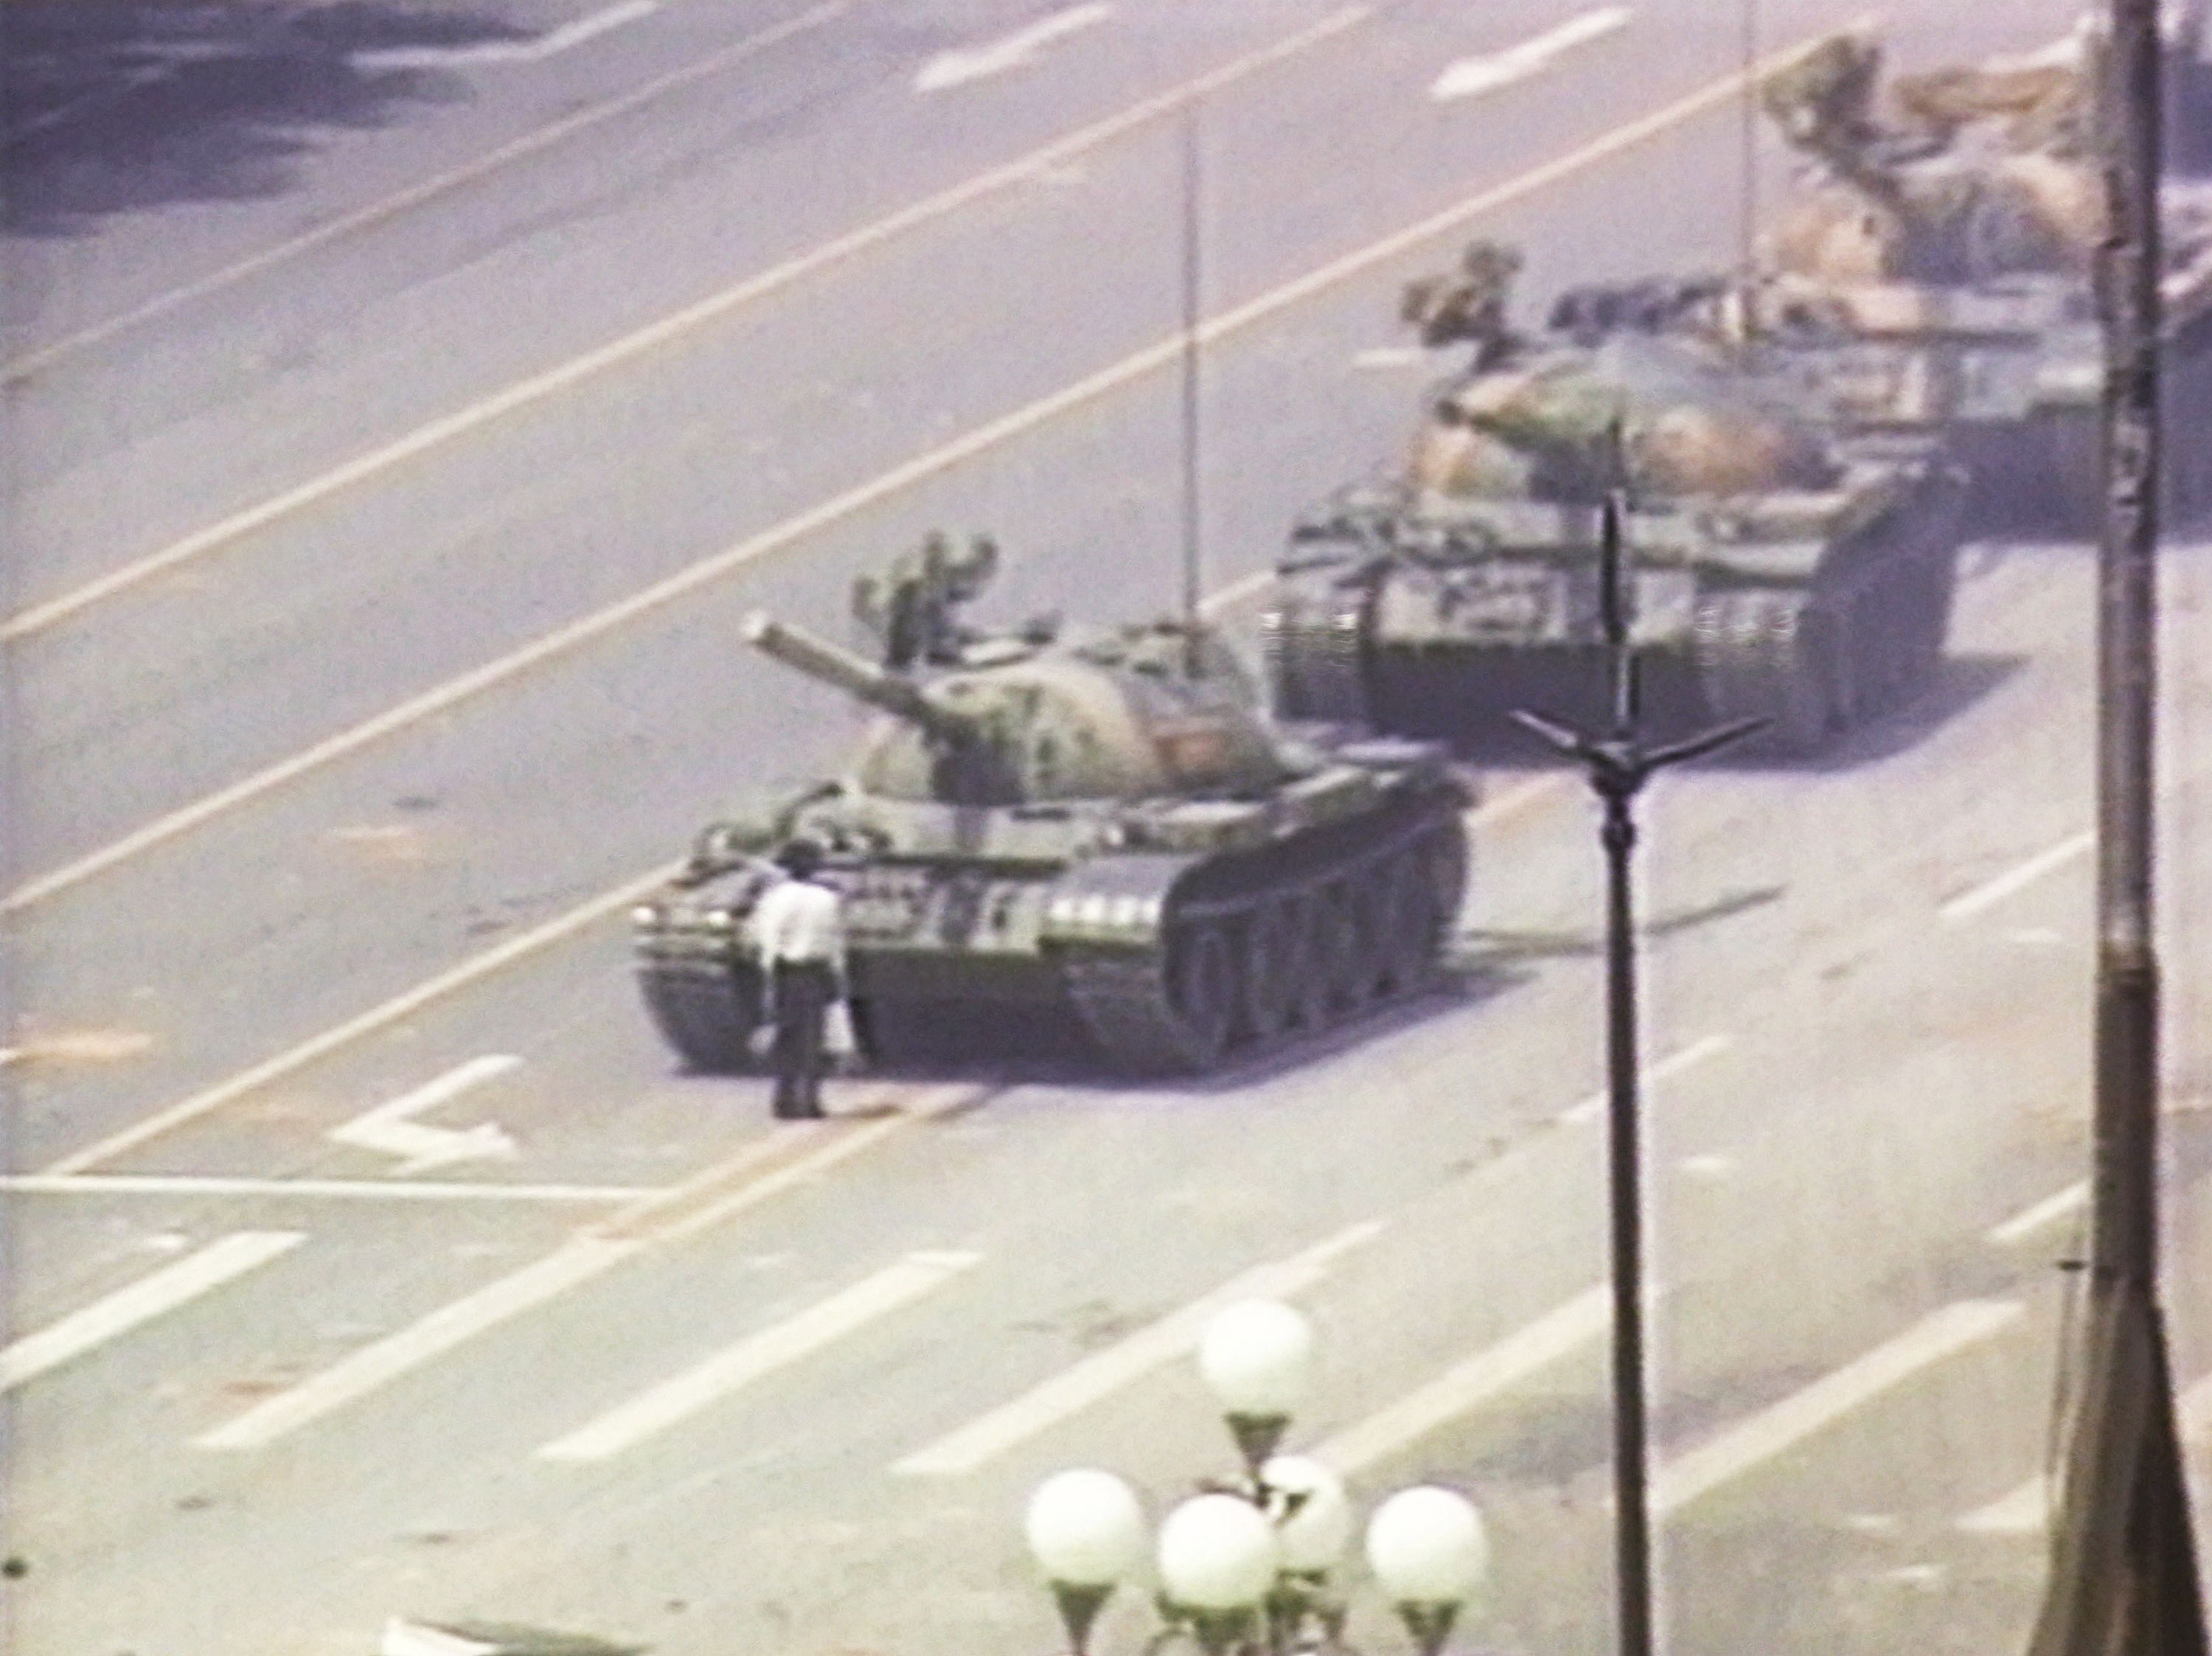 A lone demonstrator stands down a column of tanks June 5, 1989, at the entrance to Tiananmen Square in Beijing. The incident took place on the morning after Chinese troops fired on pro-democracy students who had been protesting in the square since April 15, 1989